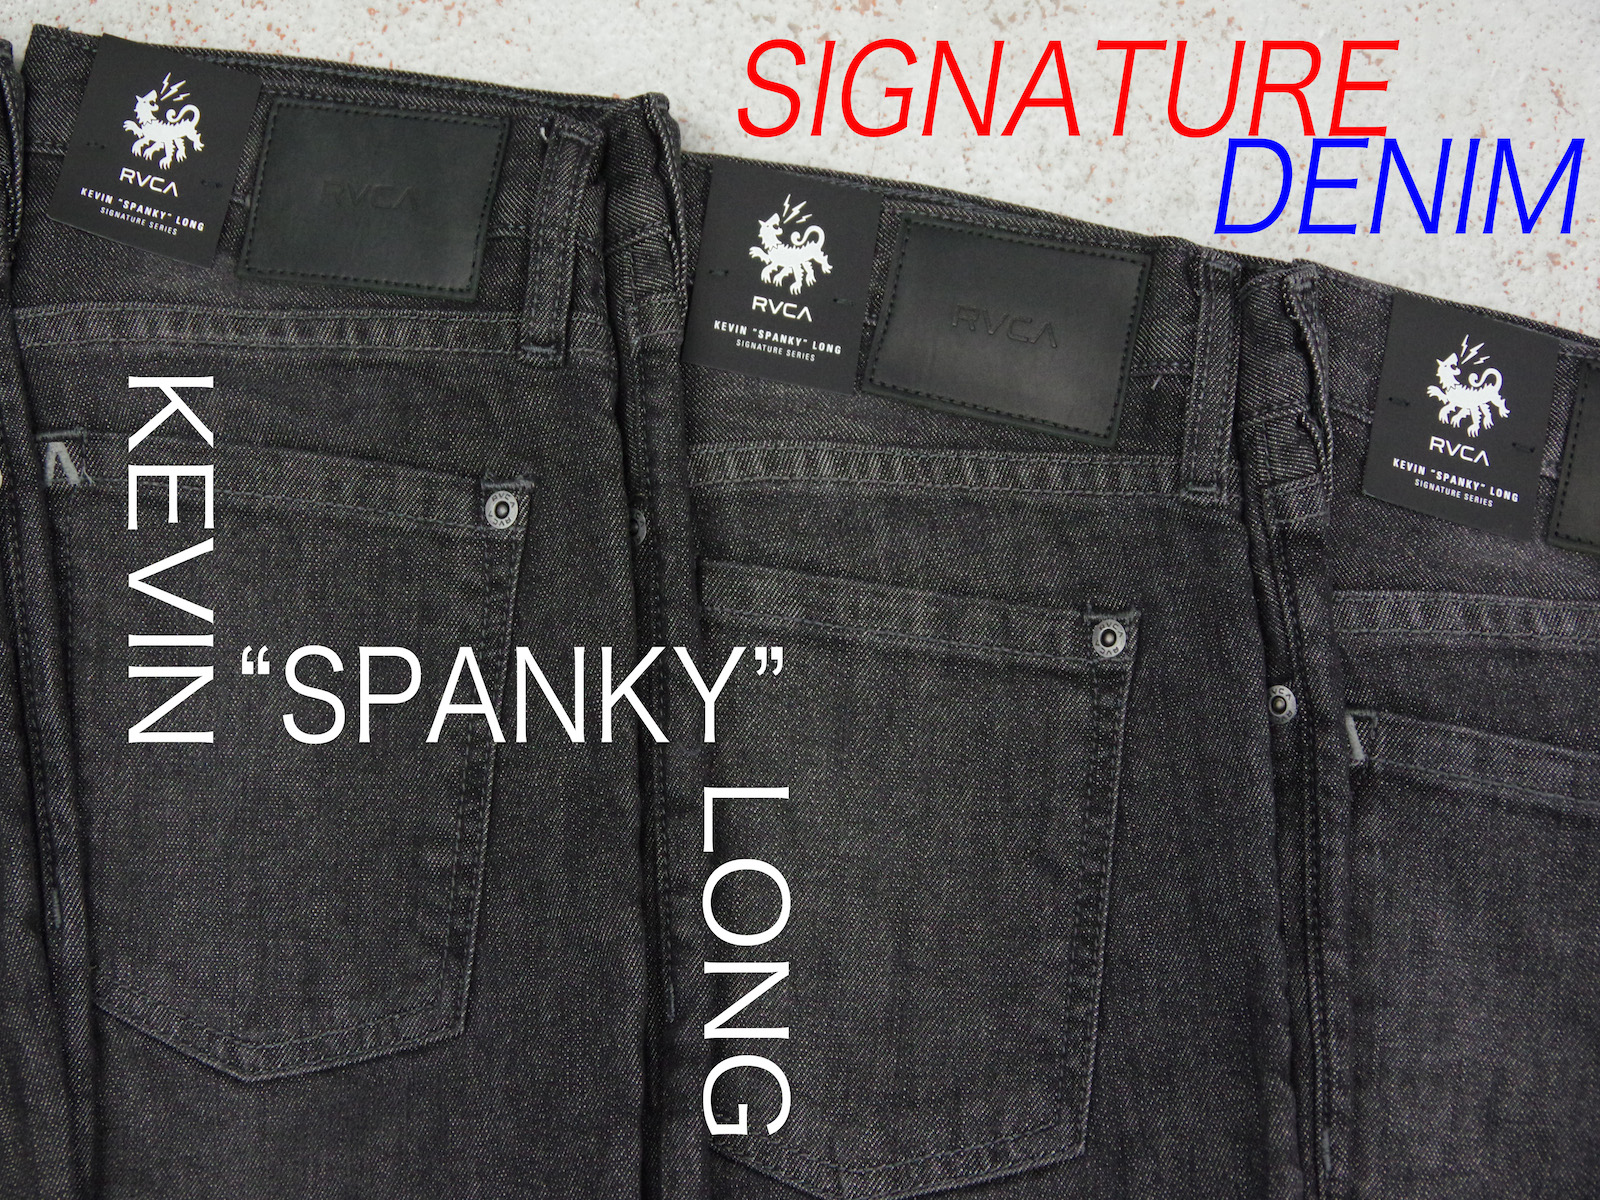 <RVCA> KEVIN &#8220;SPANKY&#8221; LONG Signature Denim